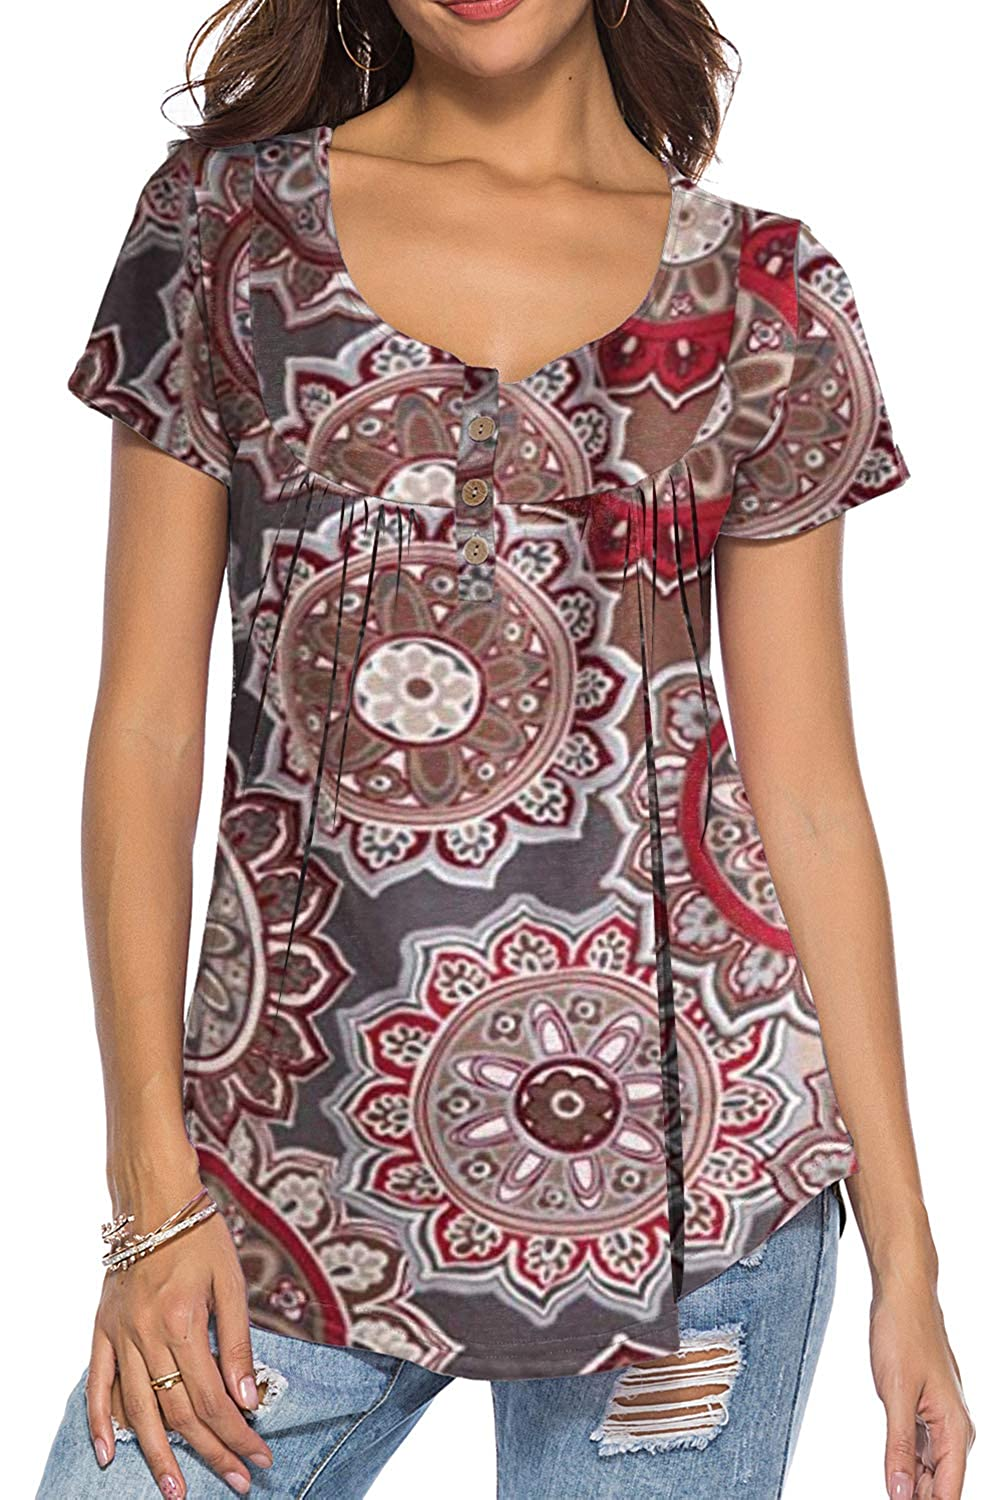 0brown Flower Neitade Women's Shirts and Blouses Short Sleeve Button Up Tunic Tops